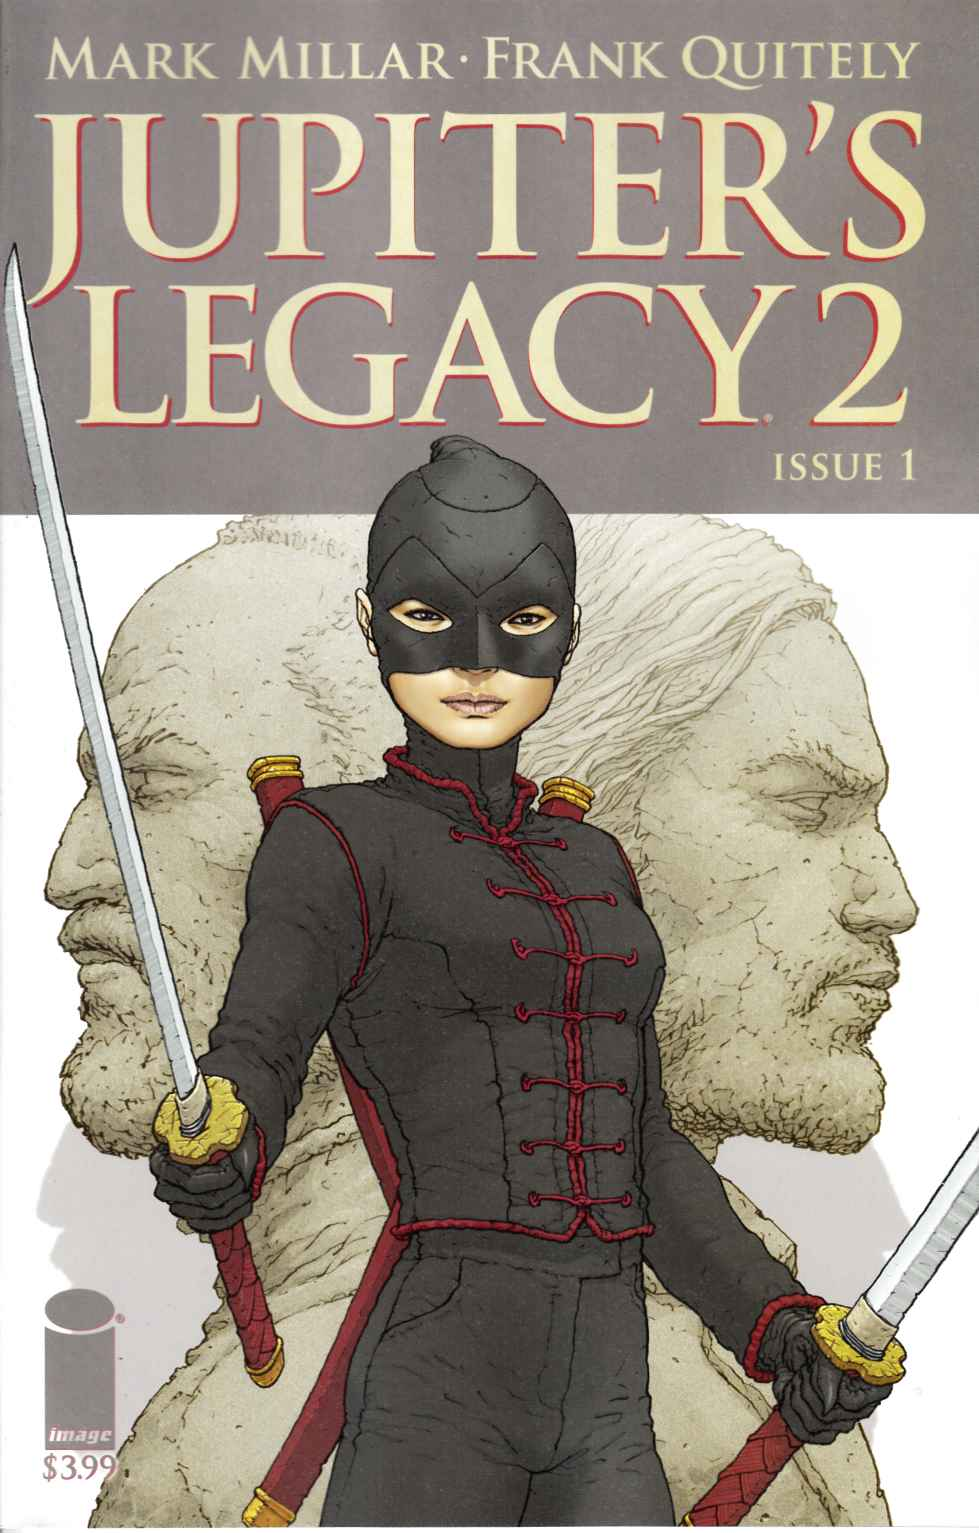 Jupiters Legacy Vol 2 #1 Cover A [Image Comic]_LARGE